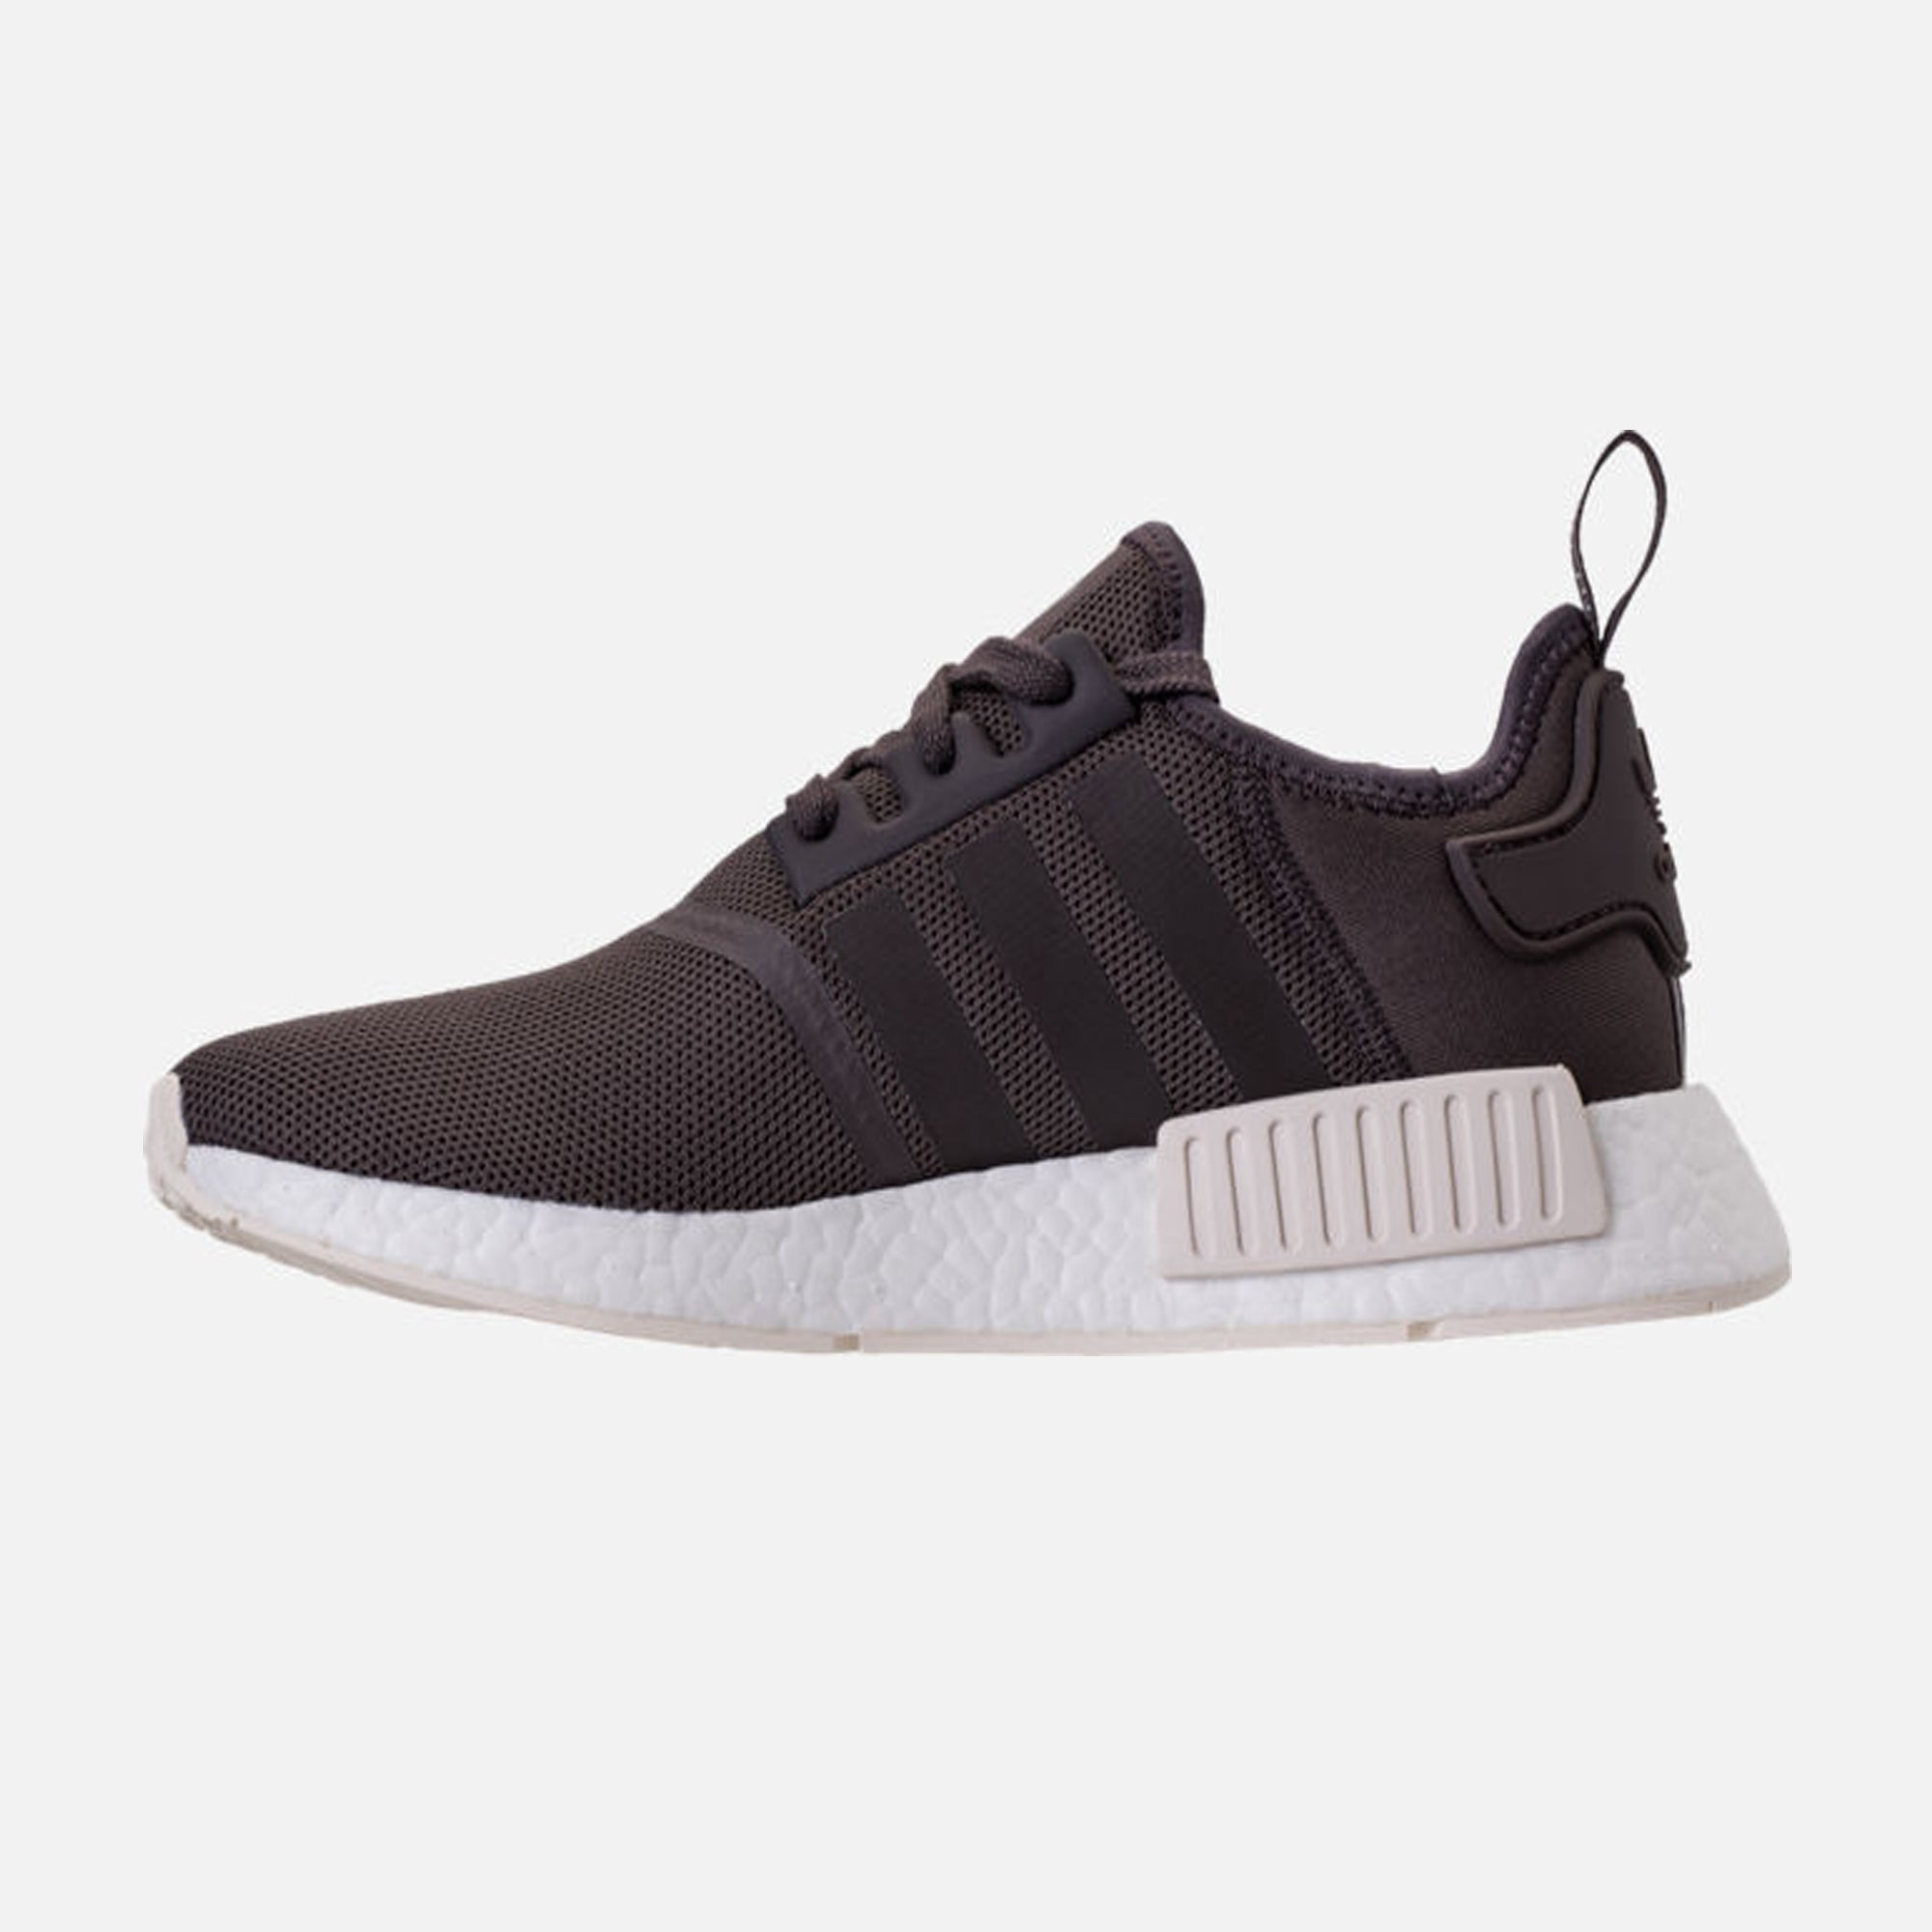 3577d2ee3 MEN S Adidas NMD Runner Casual Shoes Urban Trail Chalk White – PZOZO